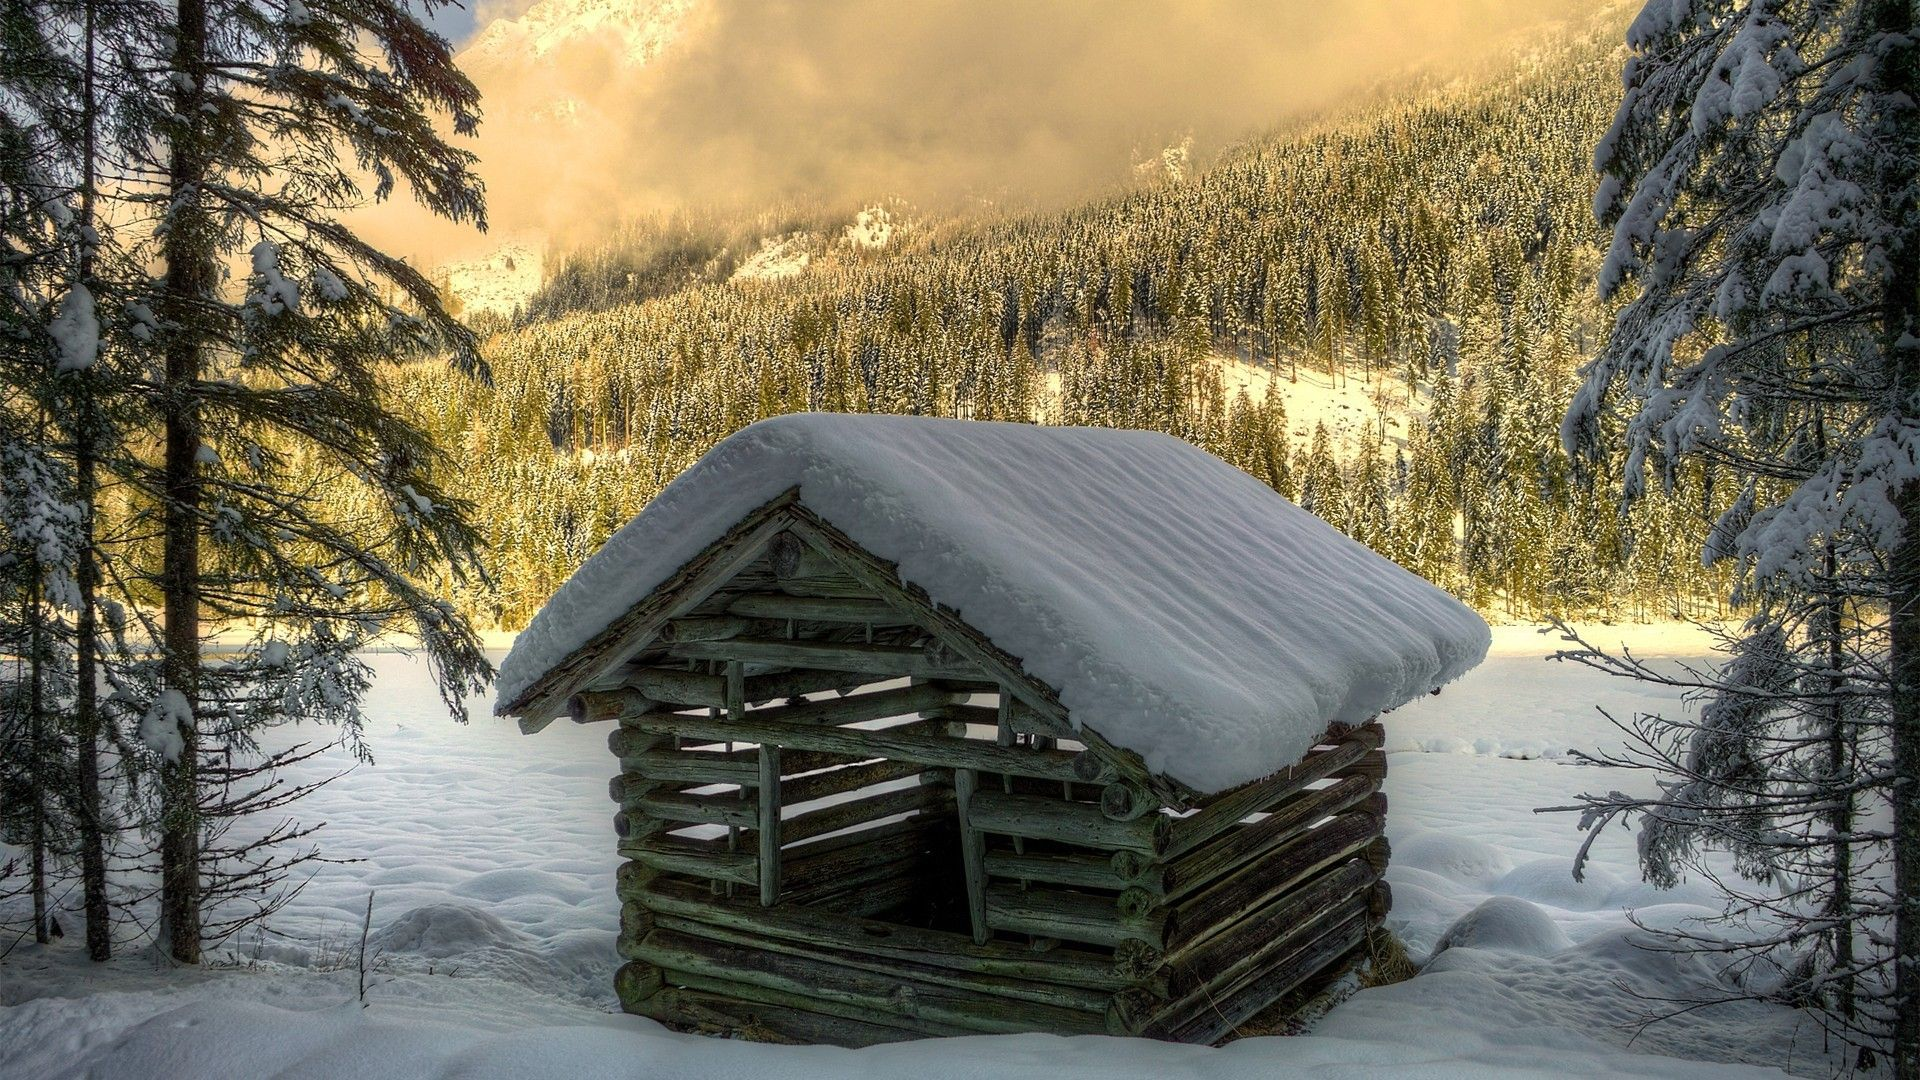 Log Cabin In The Mountains At Winter Wallpaper Winter Wallpaper Winter House Tree Log Wallpaper